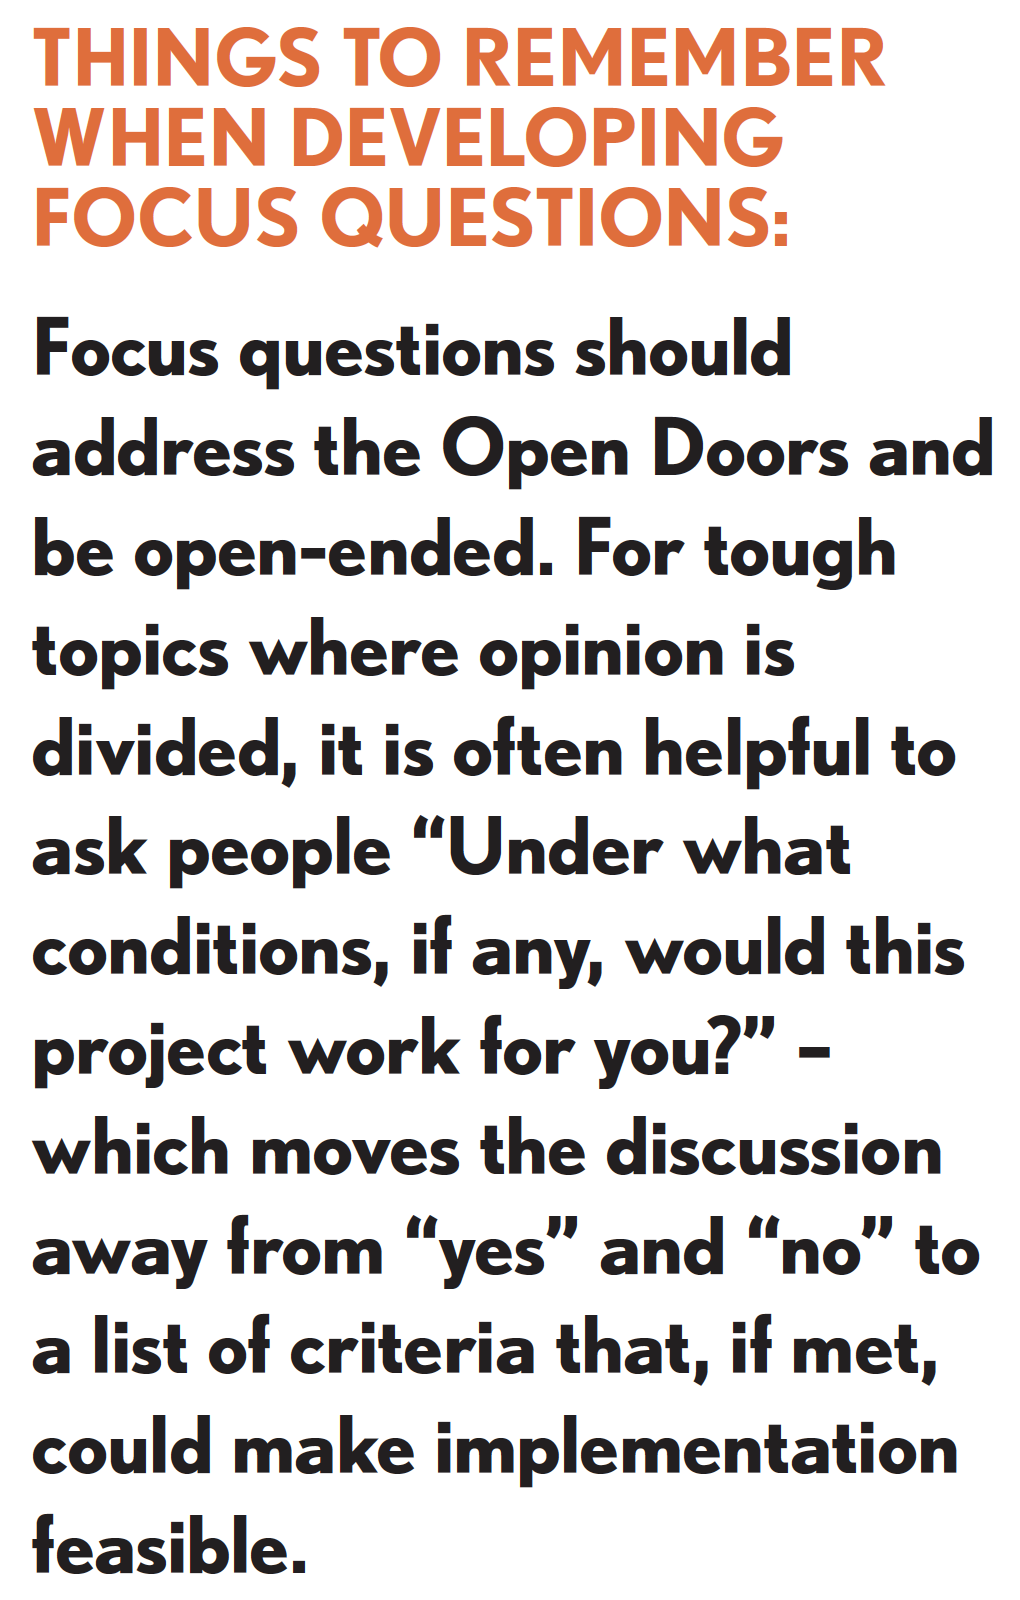 "Picture of things to remember when developing focus questions. Focus questions should address the Open Doors and be open-ended. For tough topics where opinion is divided, it is often helpful to ask people ""Under what conditions, if any, would this project work for you?"" - which moves the discussion away from ""yes"" and ""no"" to a list of criteria that, if met, could make implementation feasible."